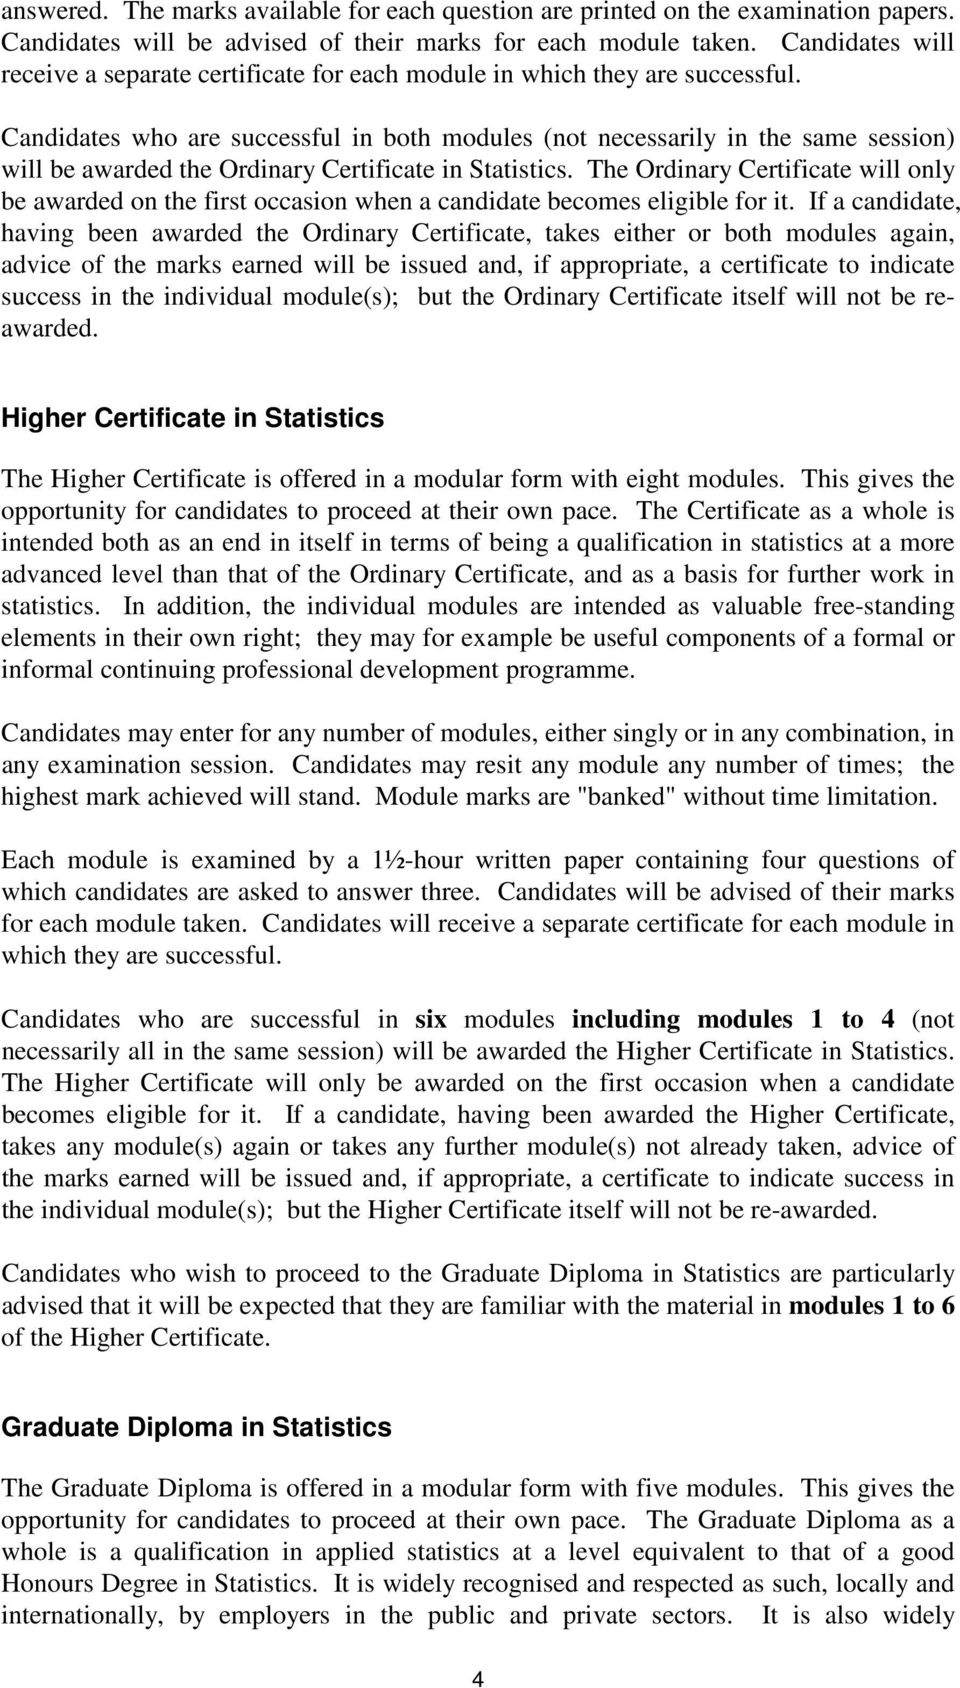 Candidates who are successful in both modules (not necessarily in the same session) will be awarded the Ordinary Certificate in Statistics.